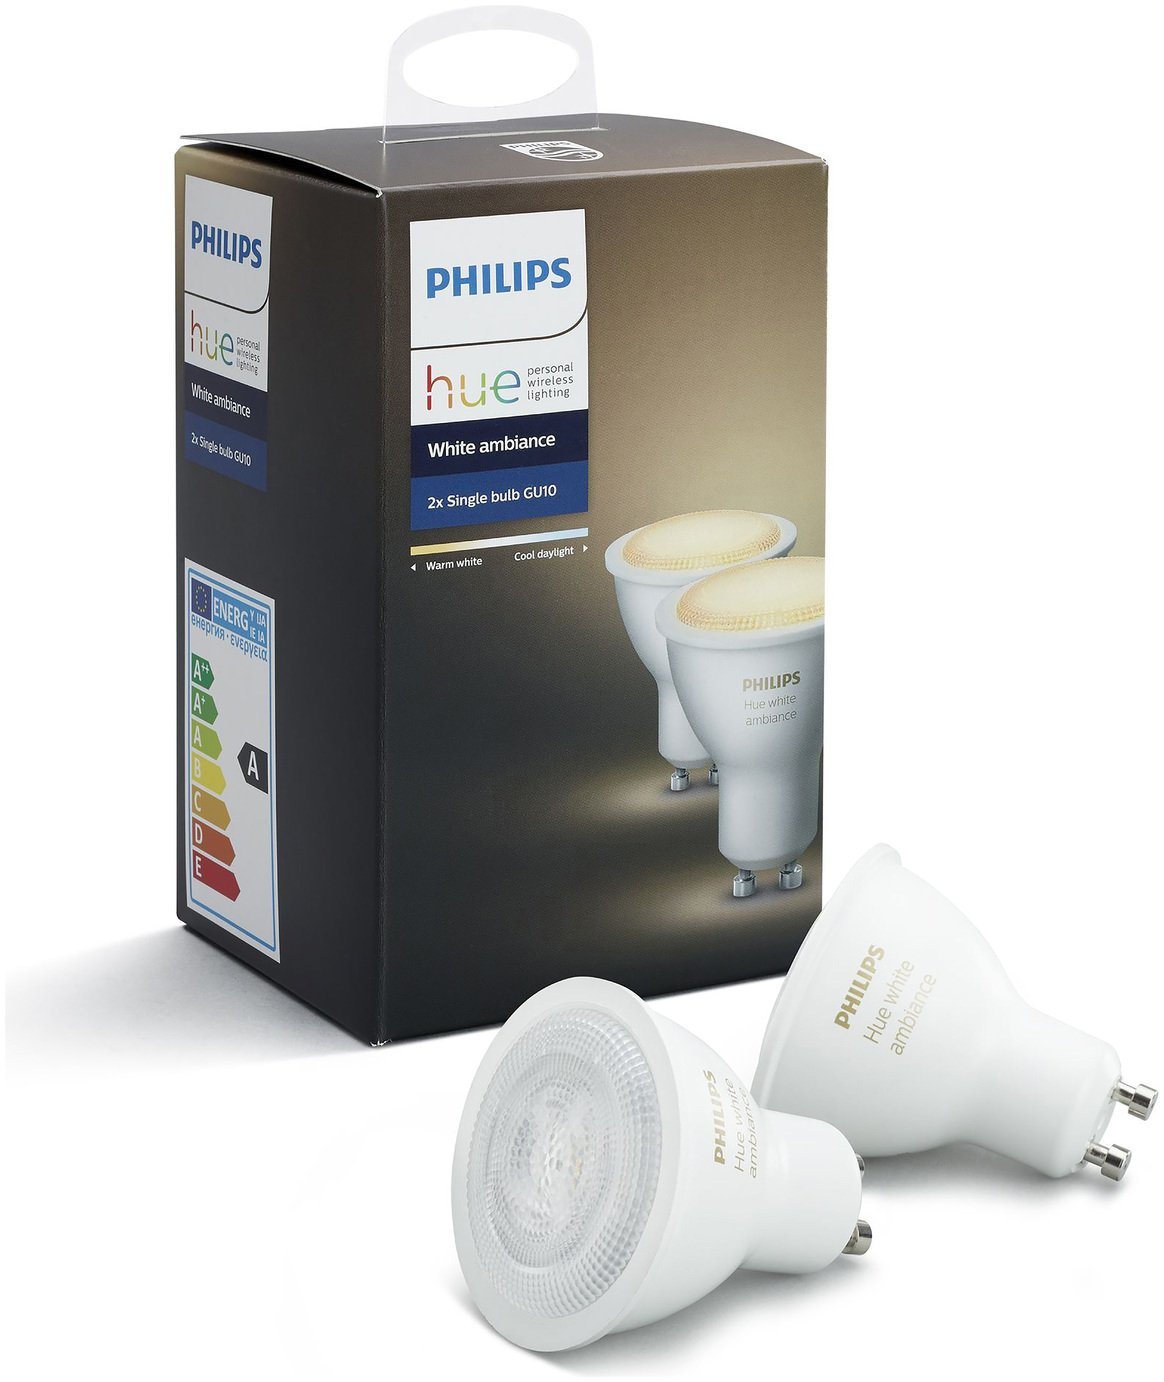 Philips Philips Hue White Ambiance GU10 Spot Lights - Double Pack.